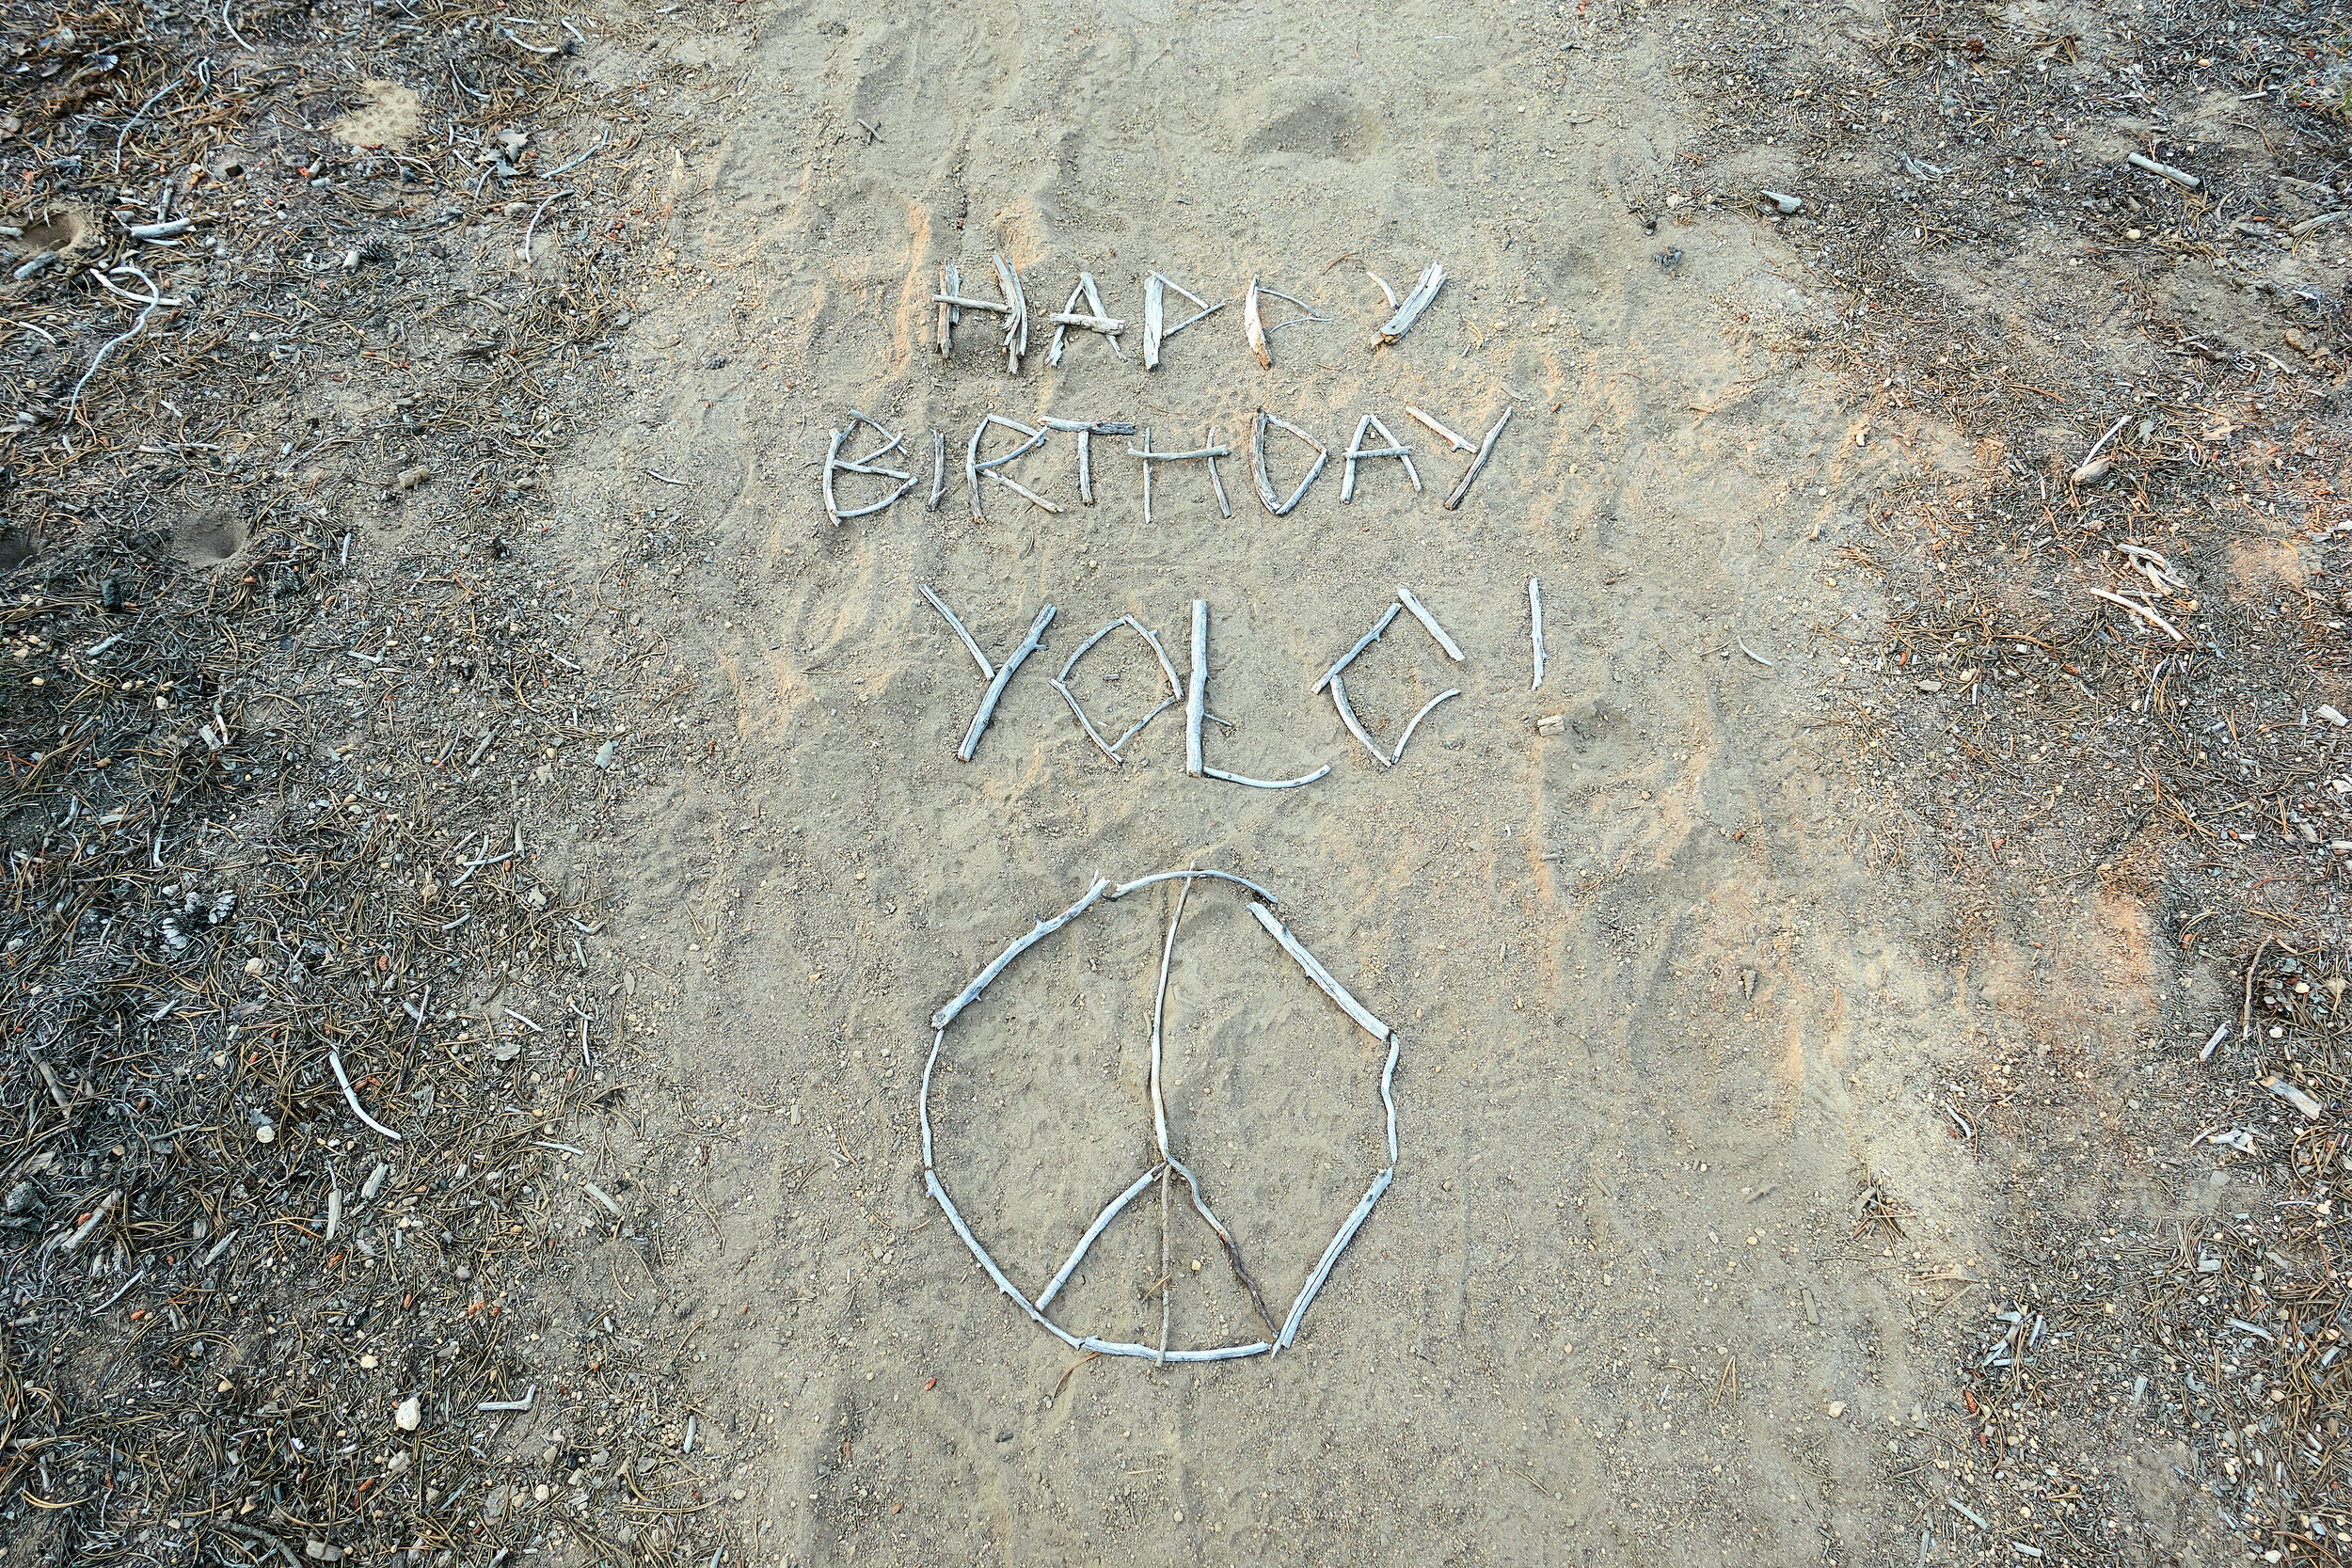 Someone left a message on the trail.